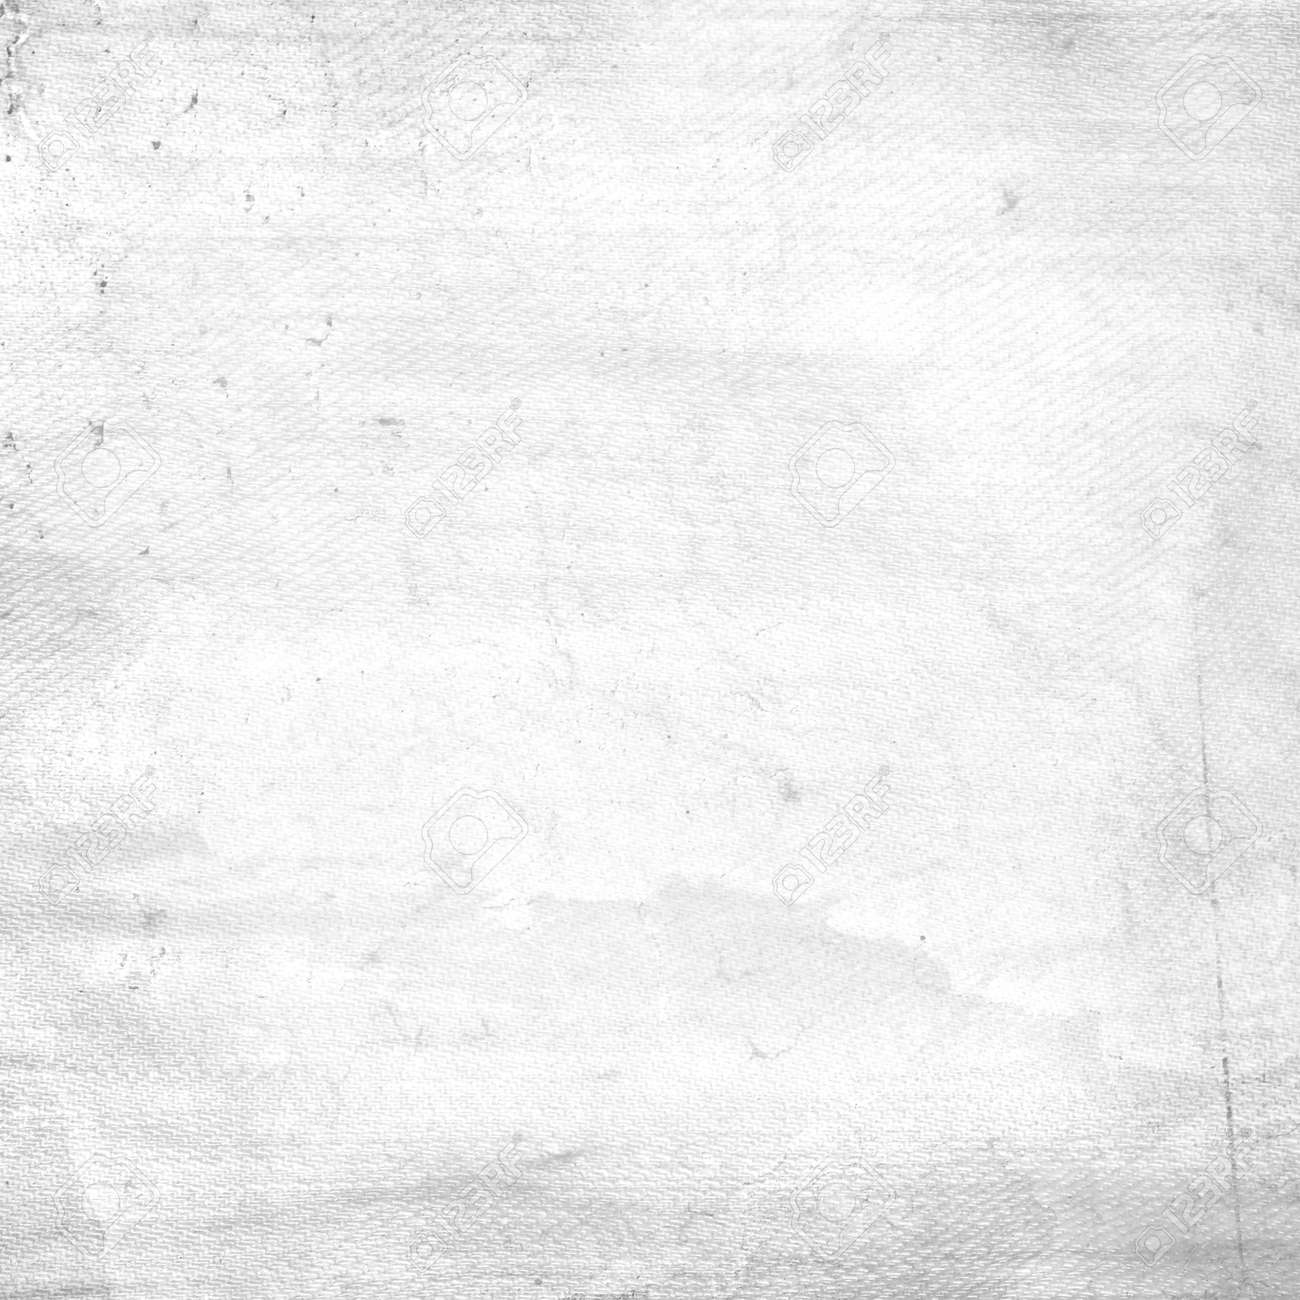 Old Paper Texture Background White Grunge Background Stock